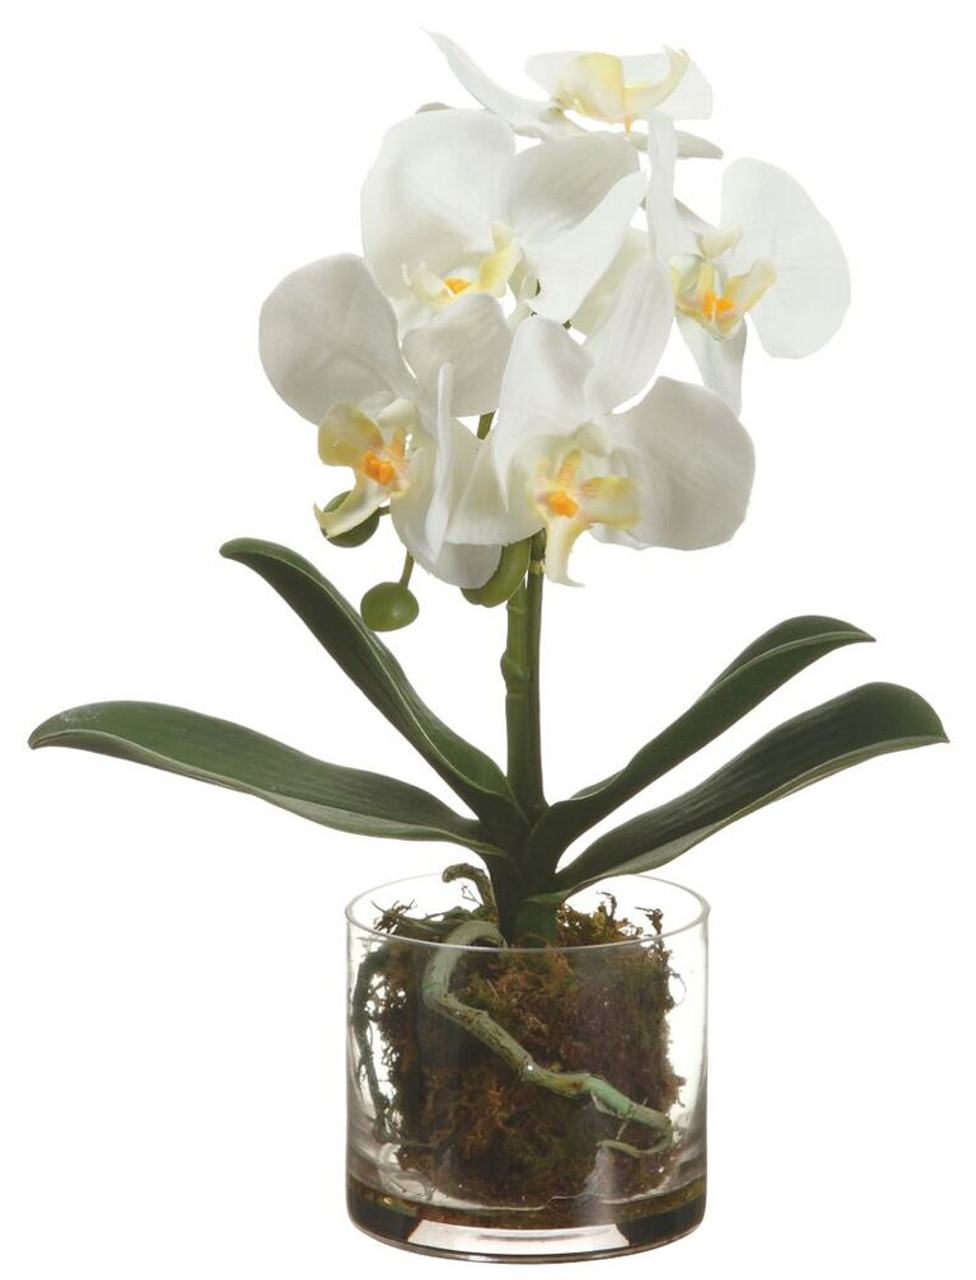 13 Phalaenopsis Orchid Plant In Glass Vase White